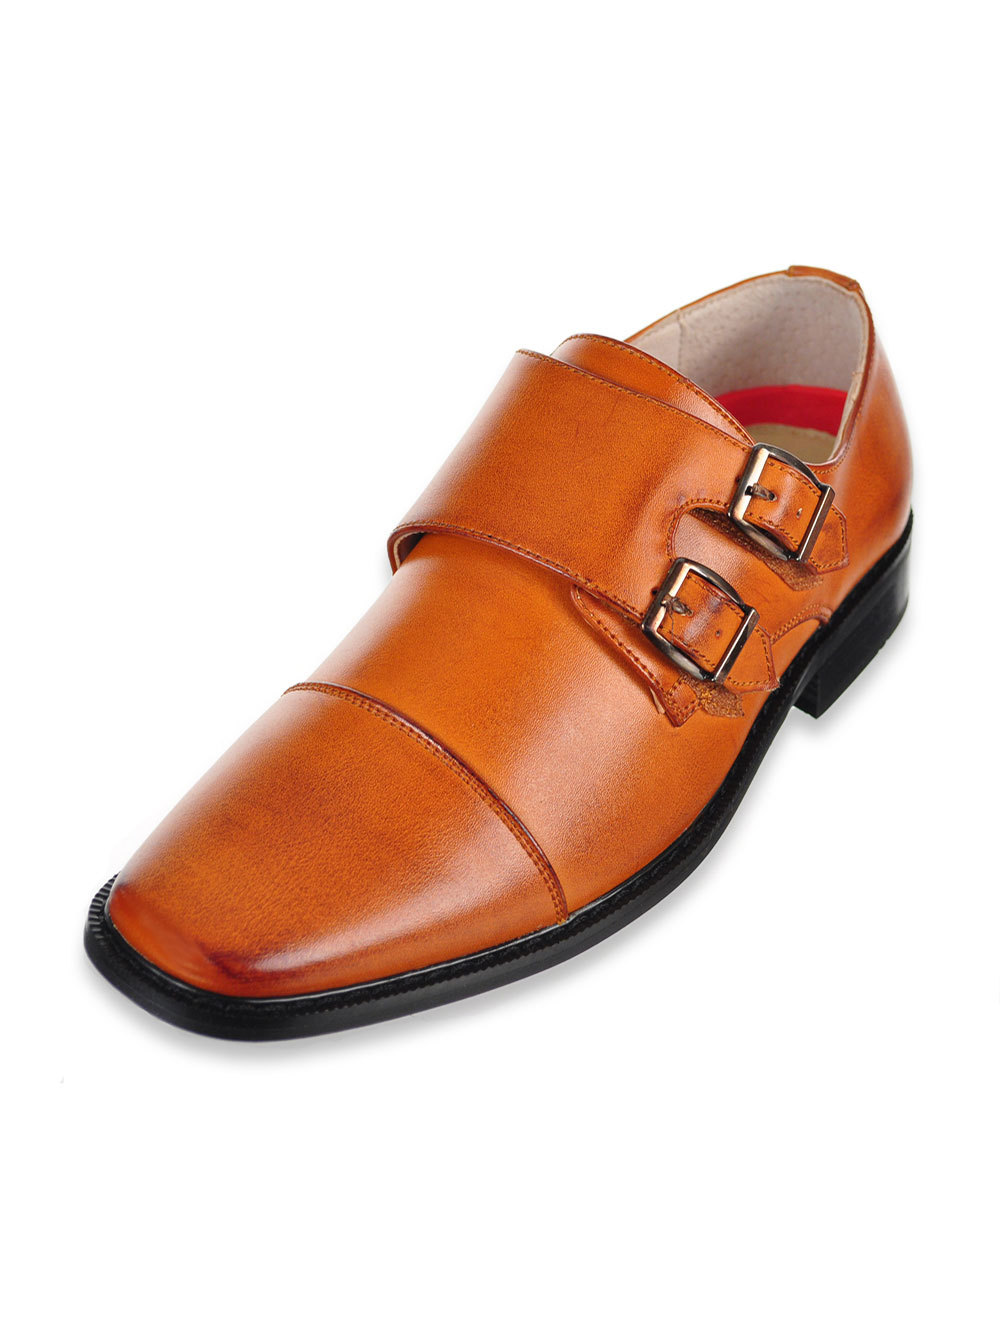 Boys Tan Dress Shoes